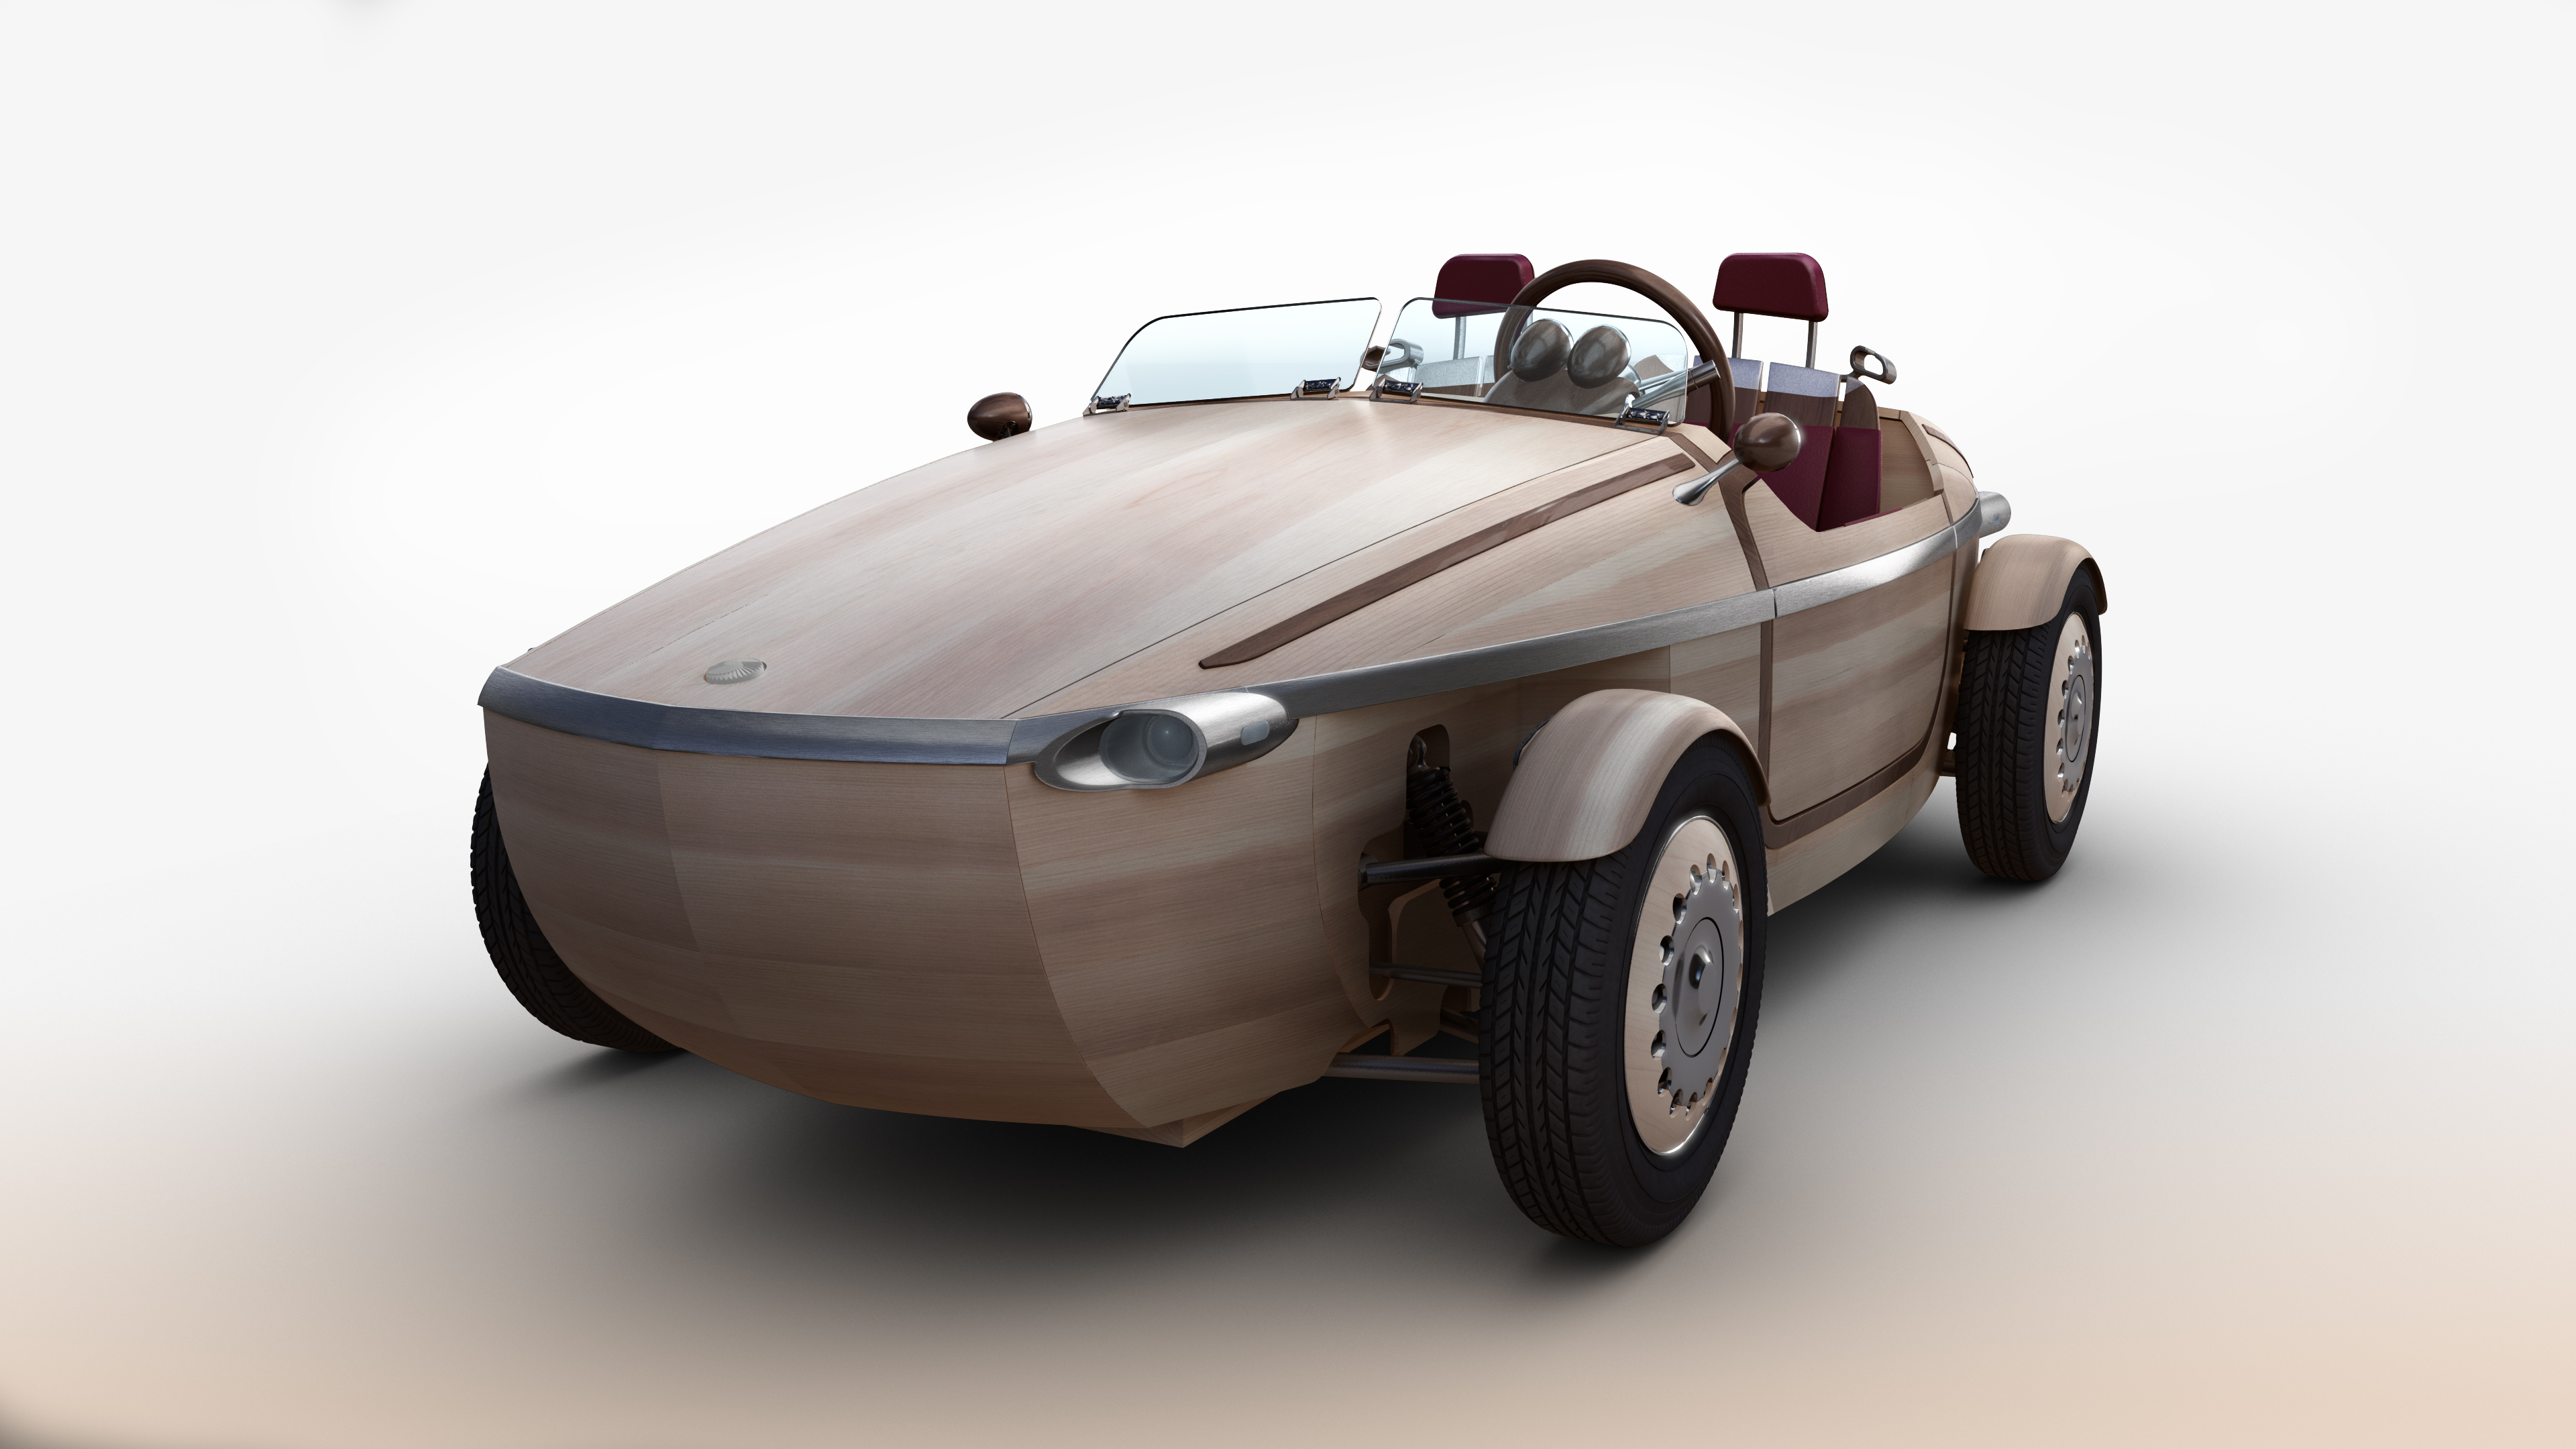 Toyota will introduce the Setsuna, a concept car made primarily of wood, at Milan Design Week in April.